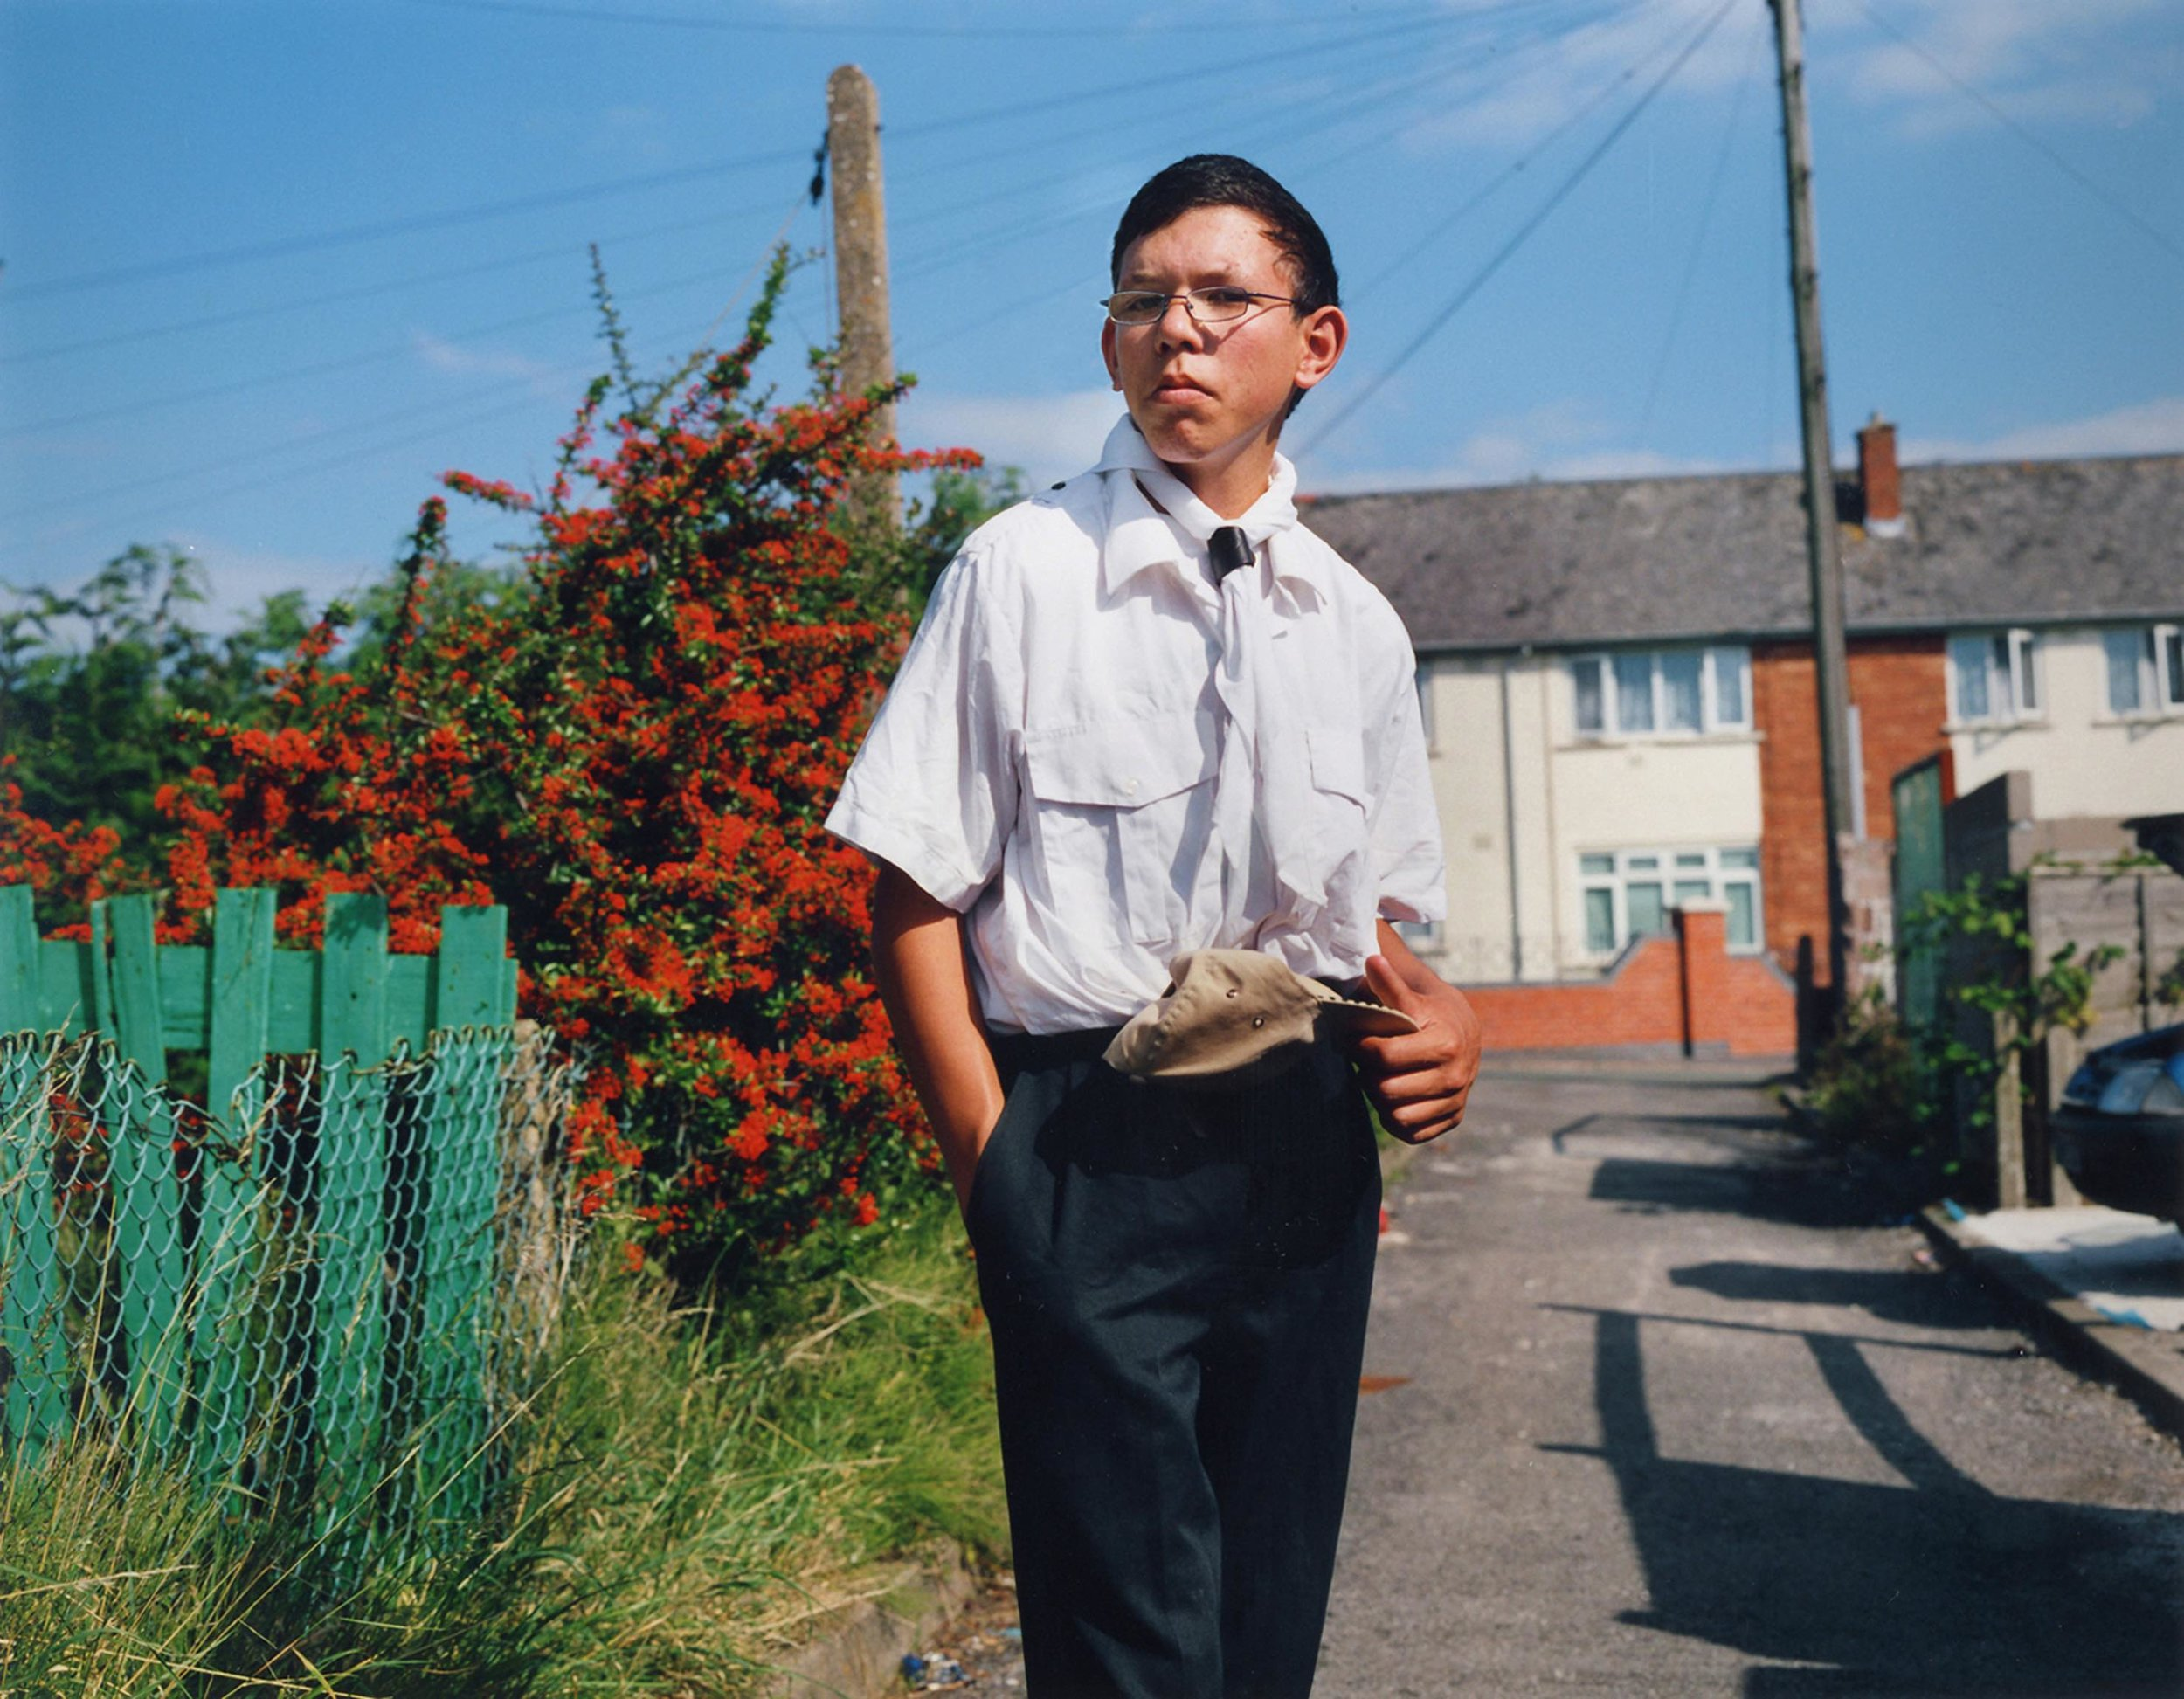 Joel from the 'Young Carers' series